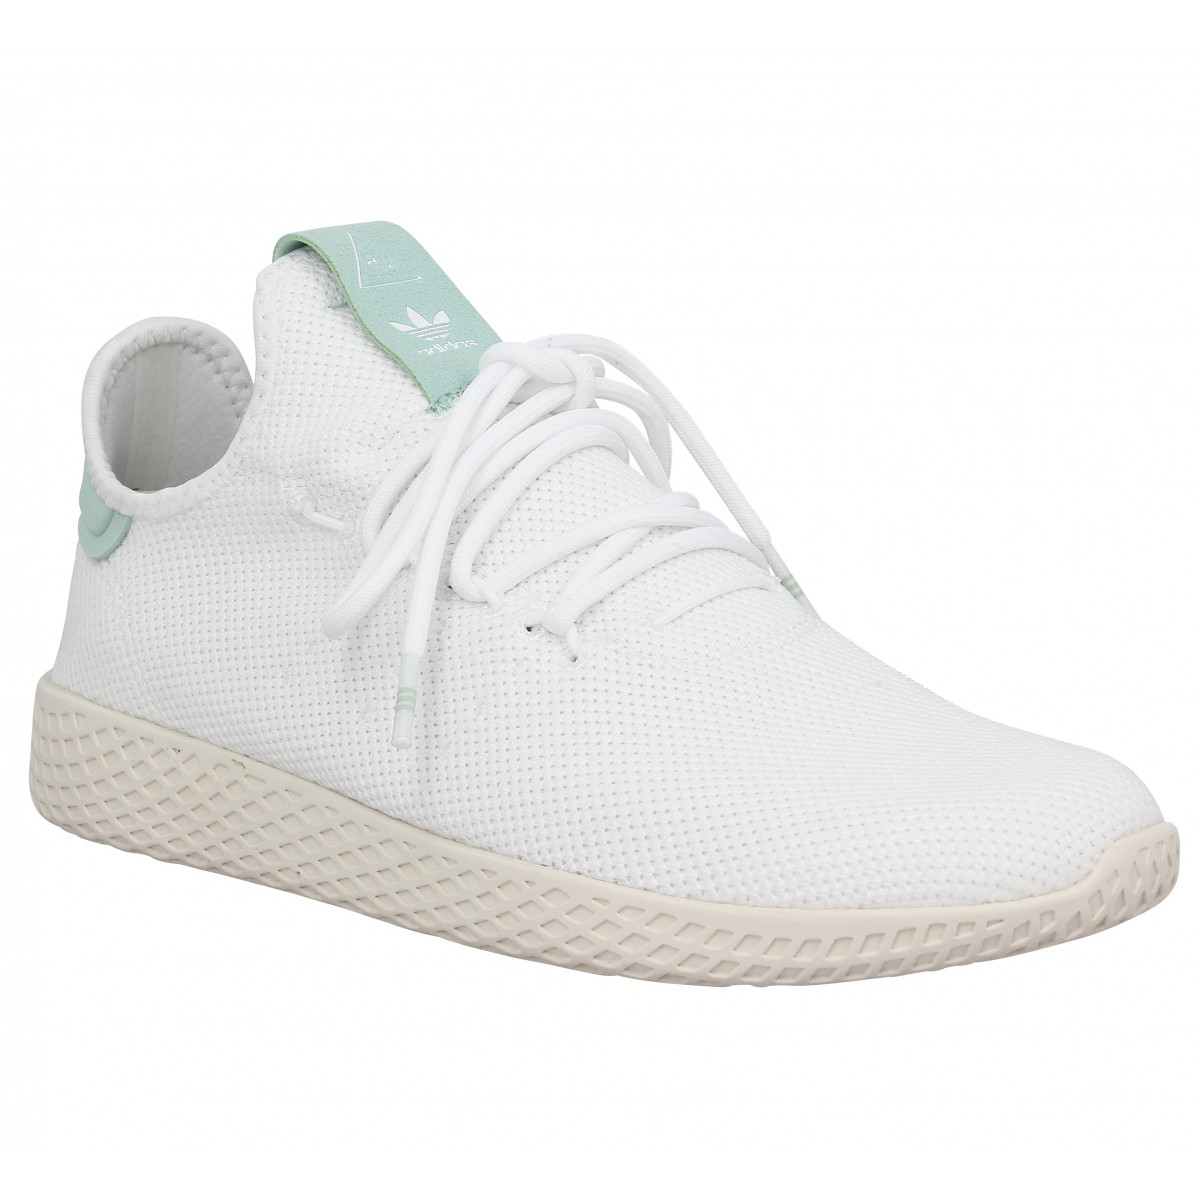 Baskets ADIDAS X PHARRELL WILLIAMS PW Tennis mesh Blanc Vert